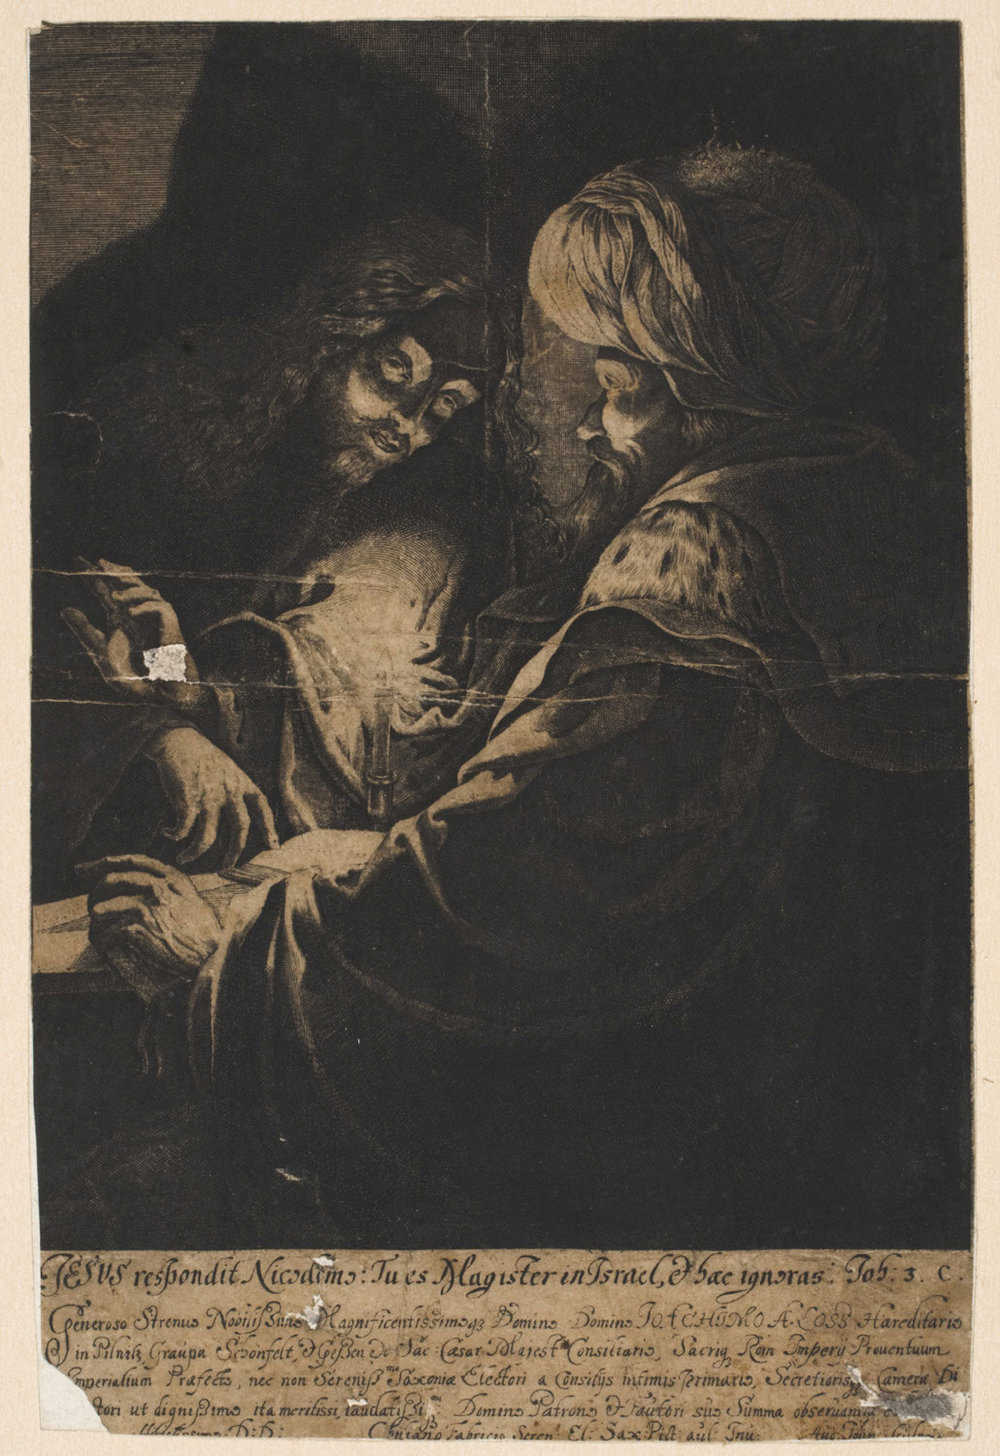 Christ Responding to Nicodemus  , 17th century, by Augustin John, German from the  Philadelphia Museum of Art